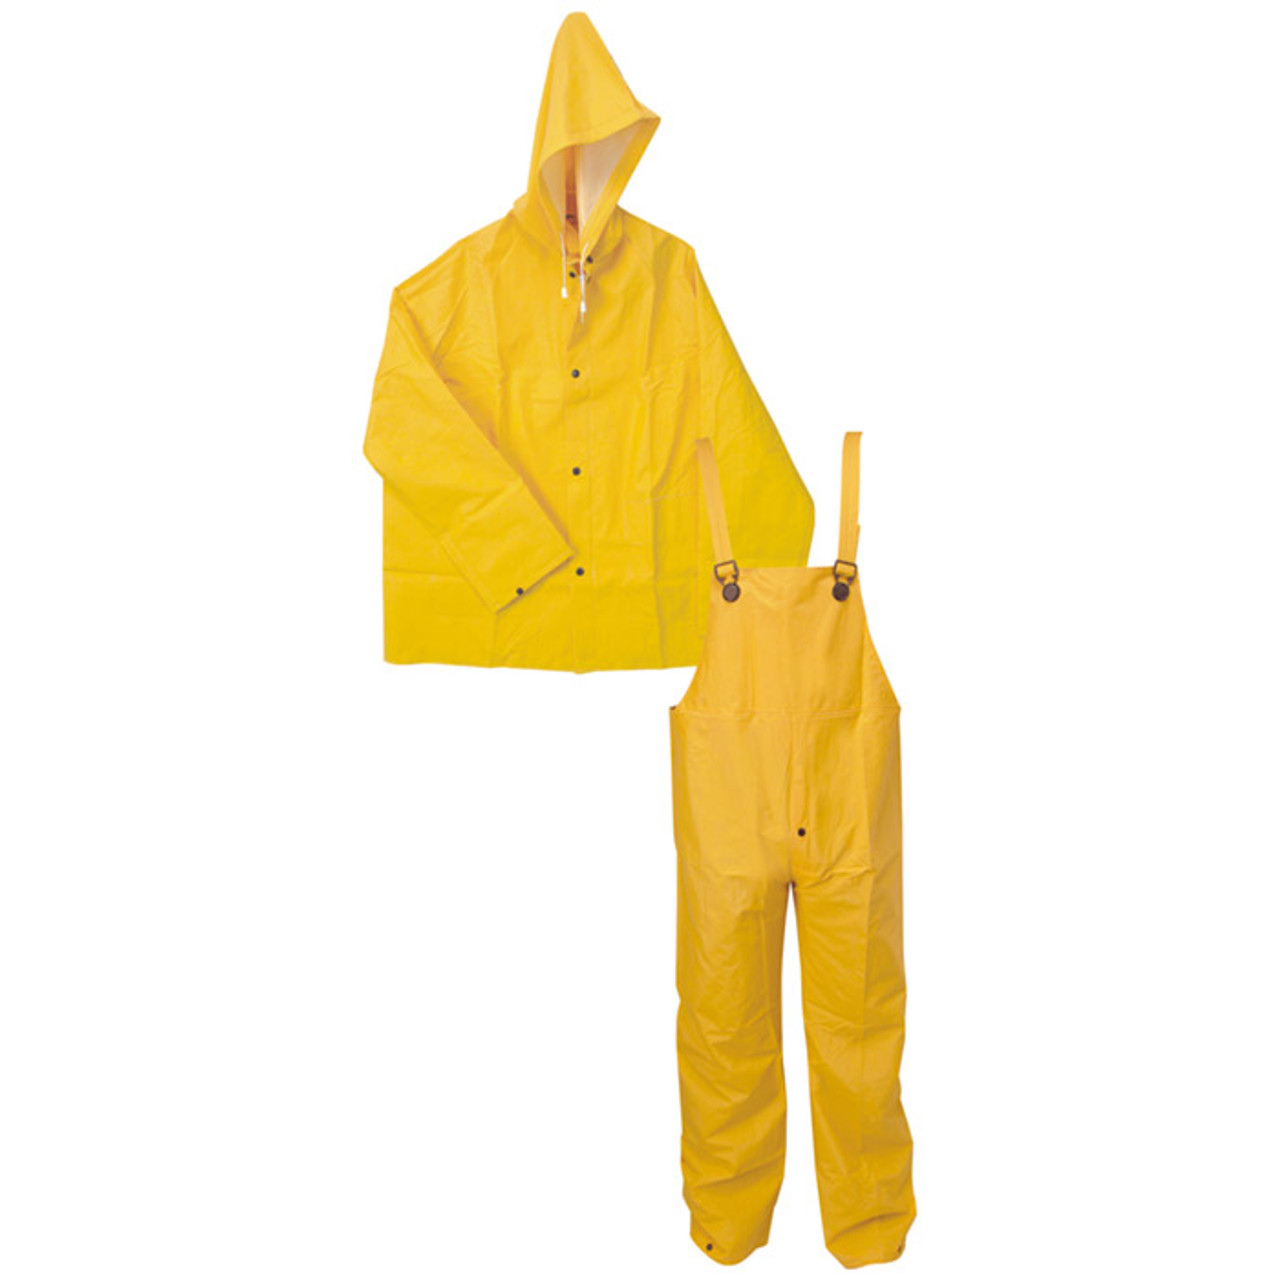 3 PIECE .35mm PVC RAIN SUIT - YELLOW